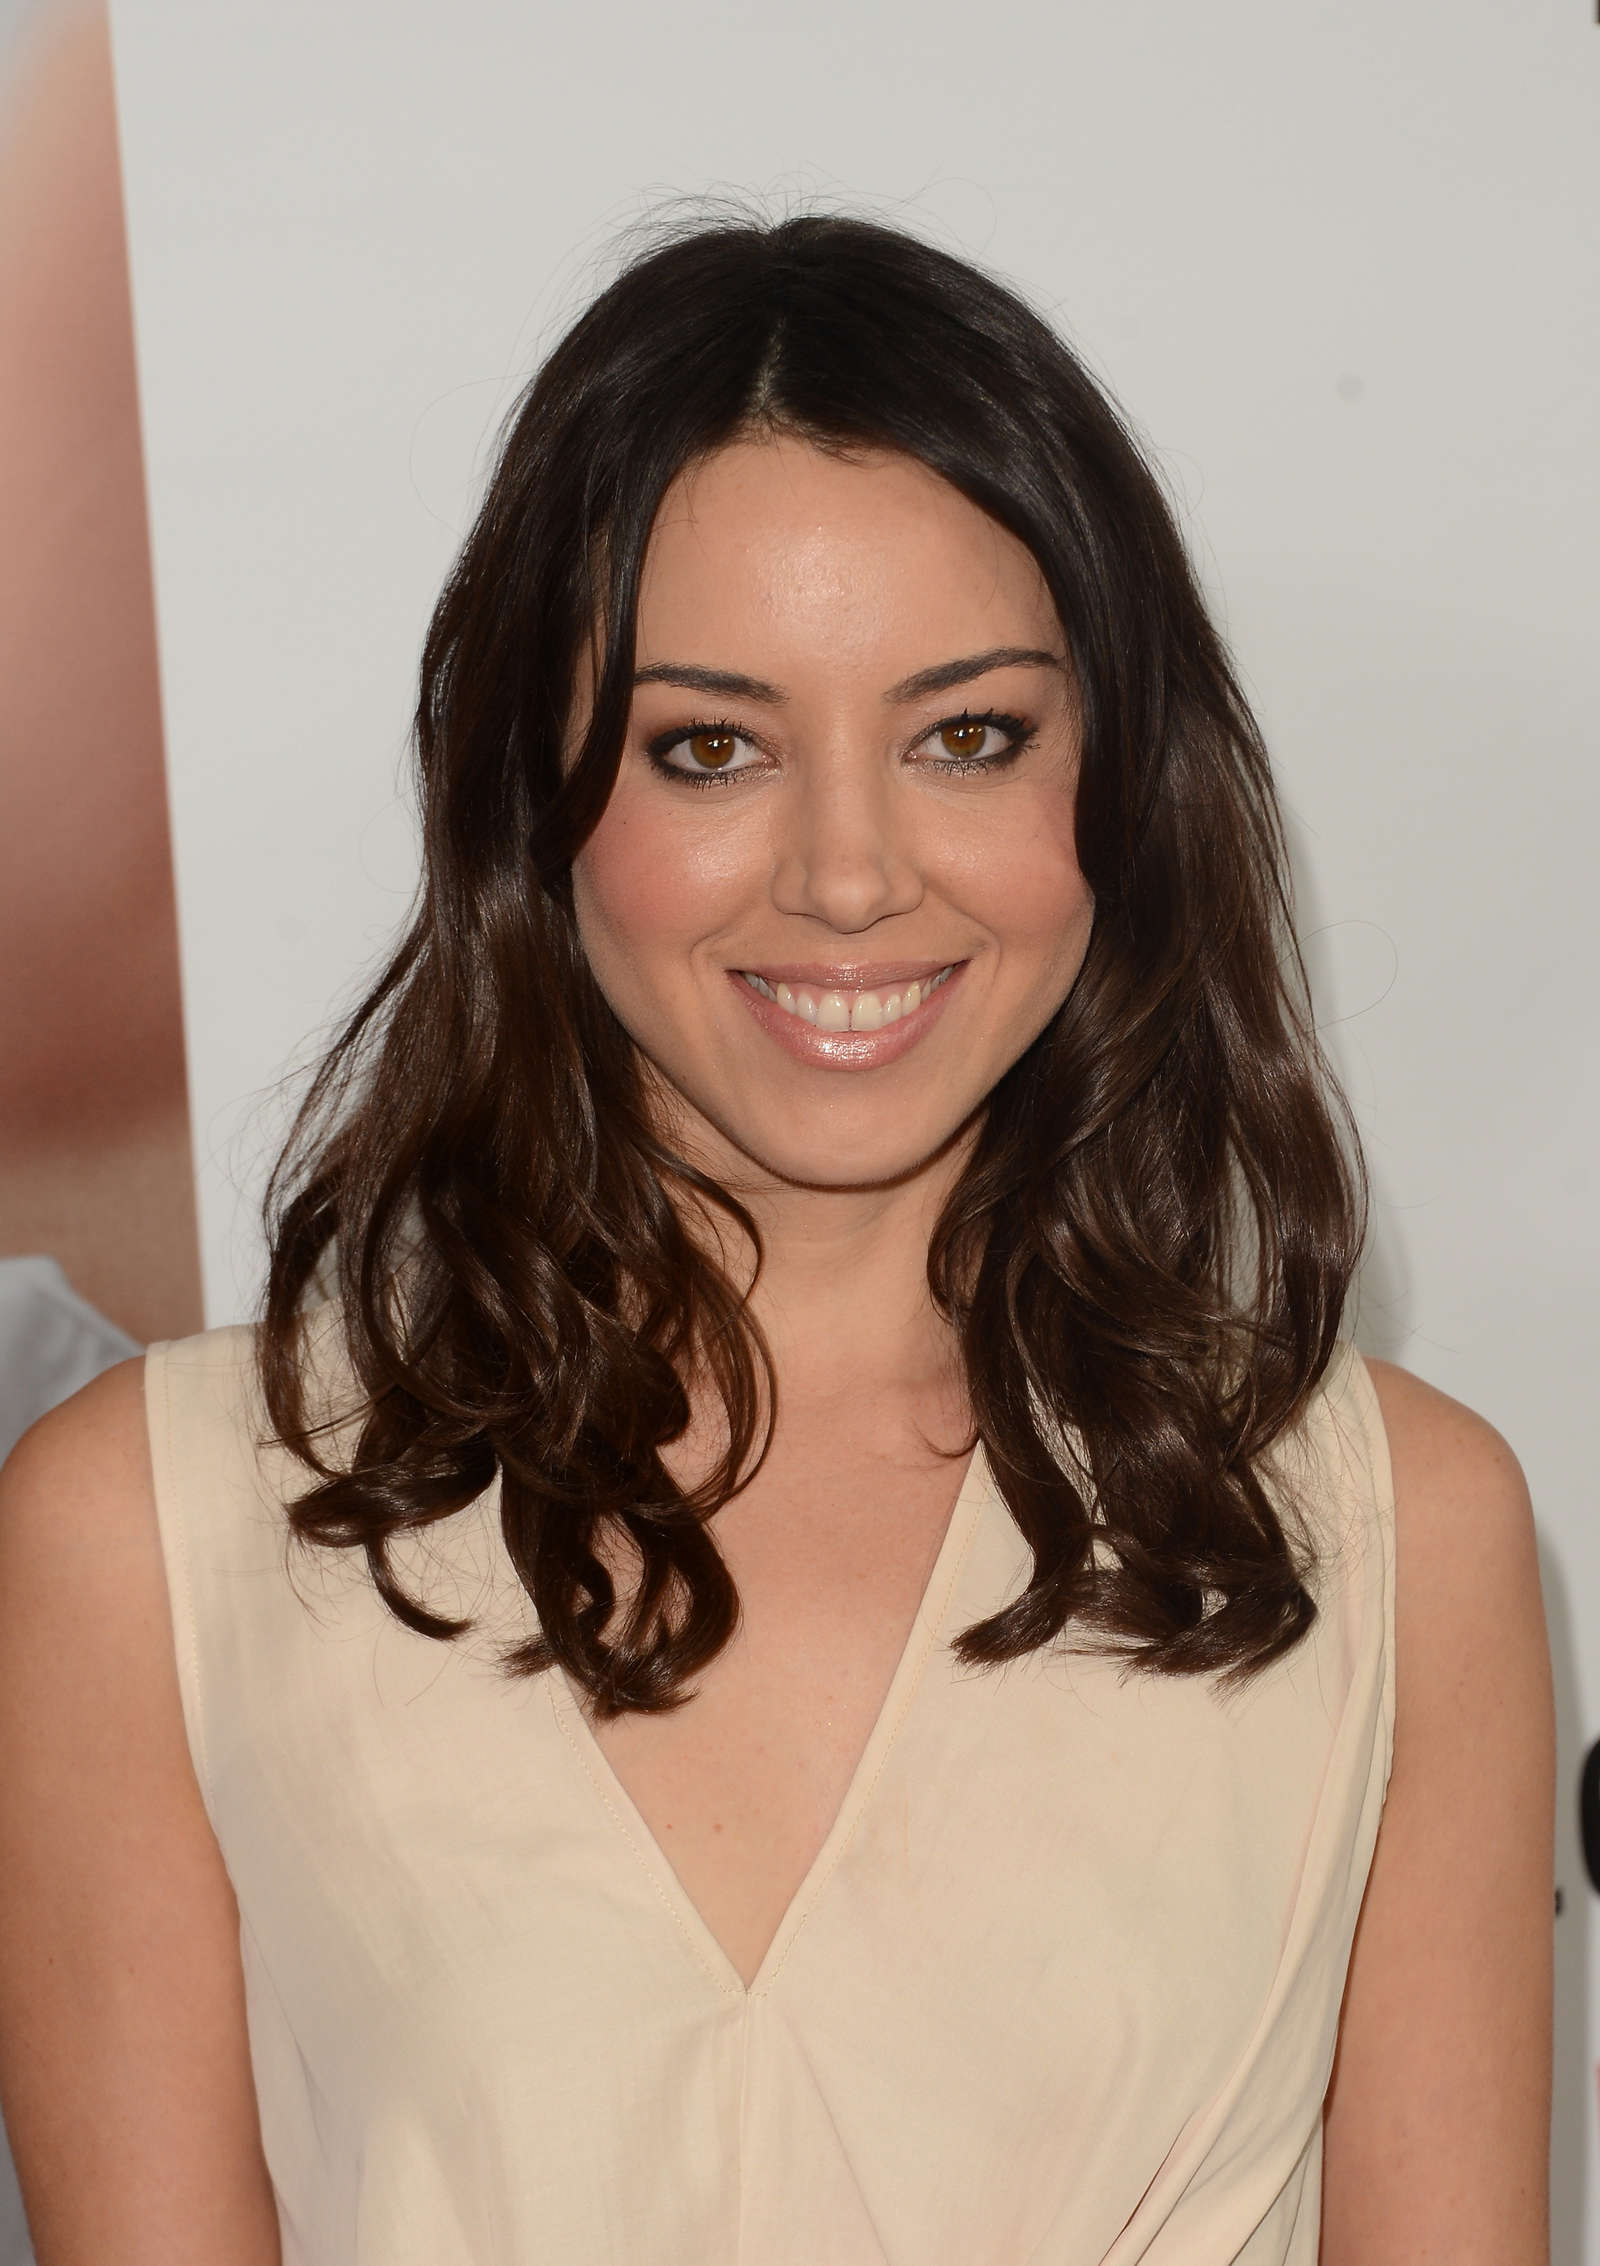 Aubrey Plaza earned a  million dollar salary, leaving the net worth at 3 million in 2017